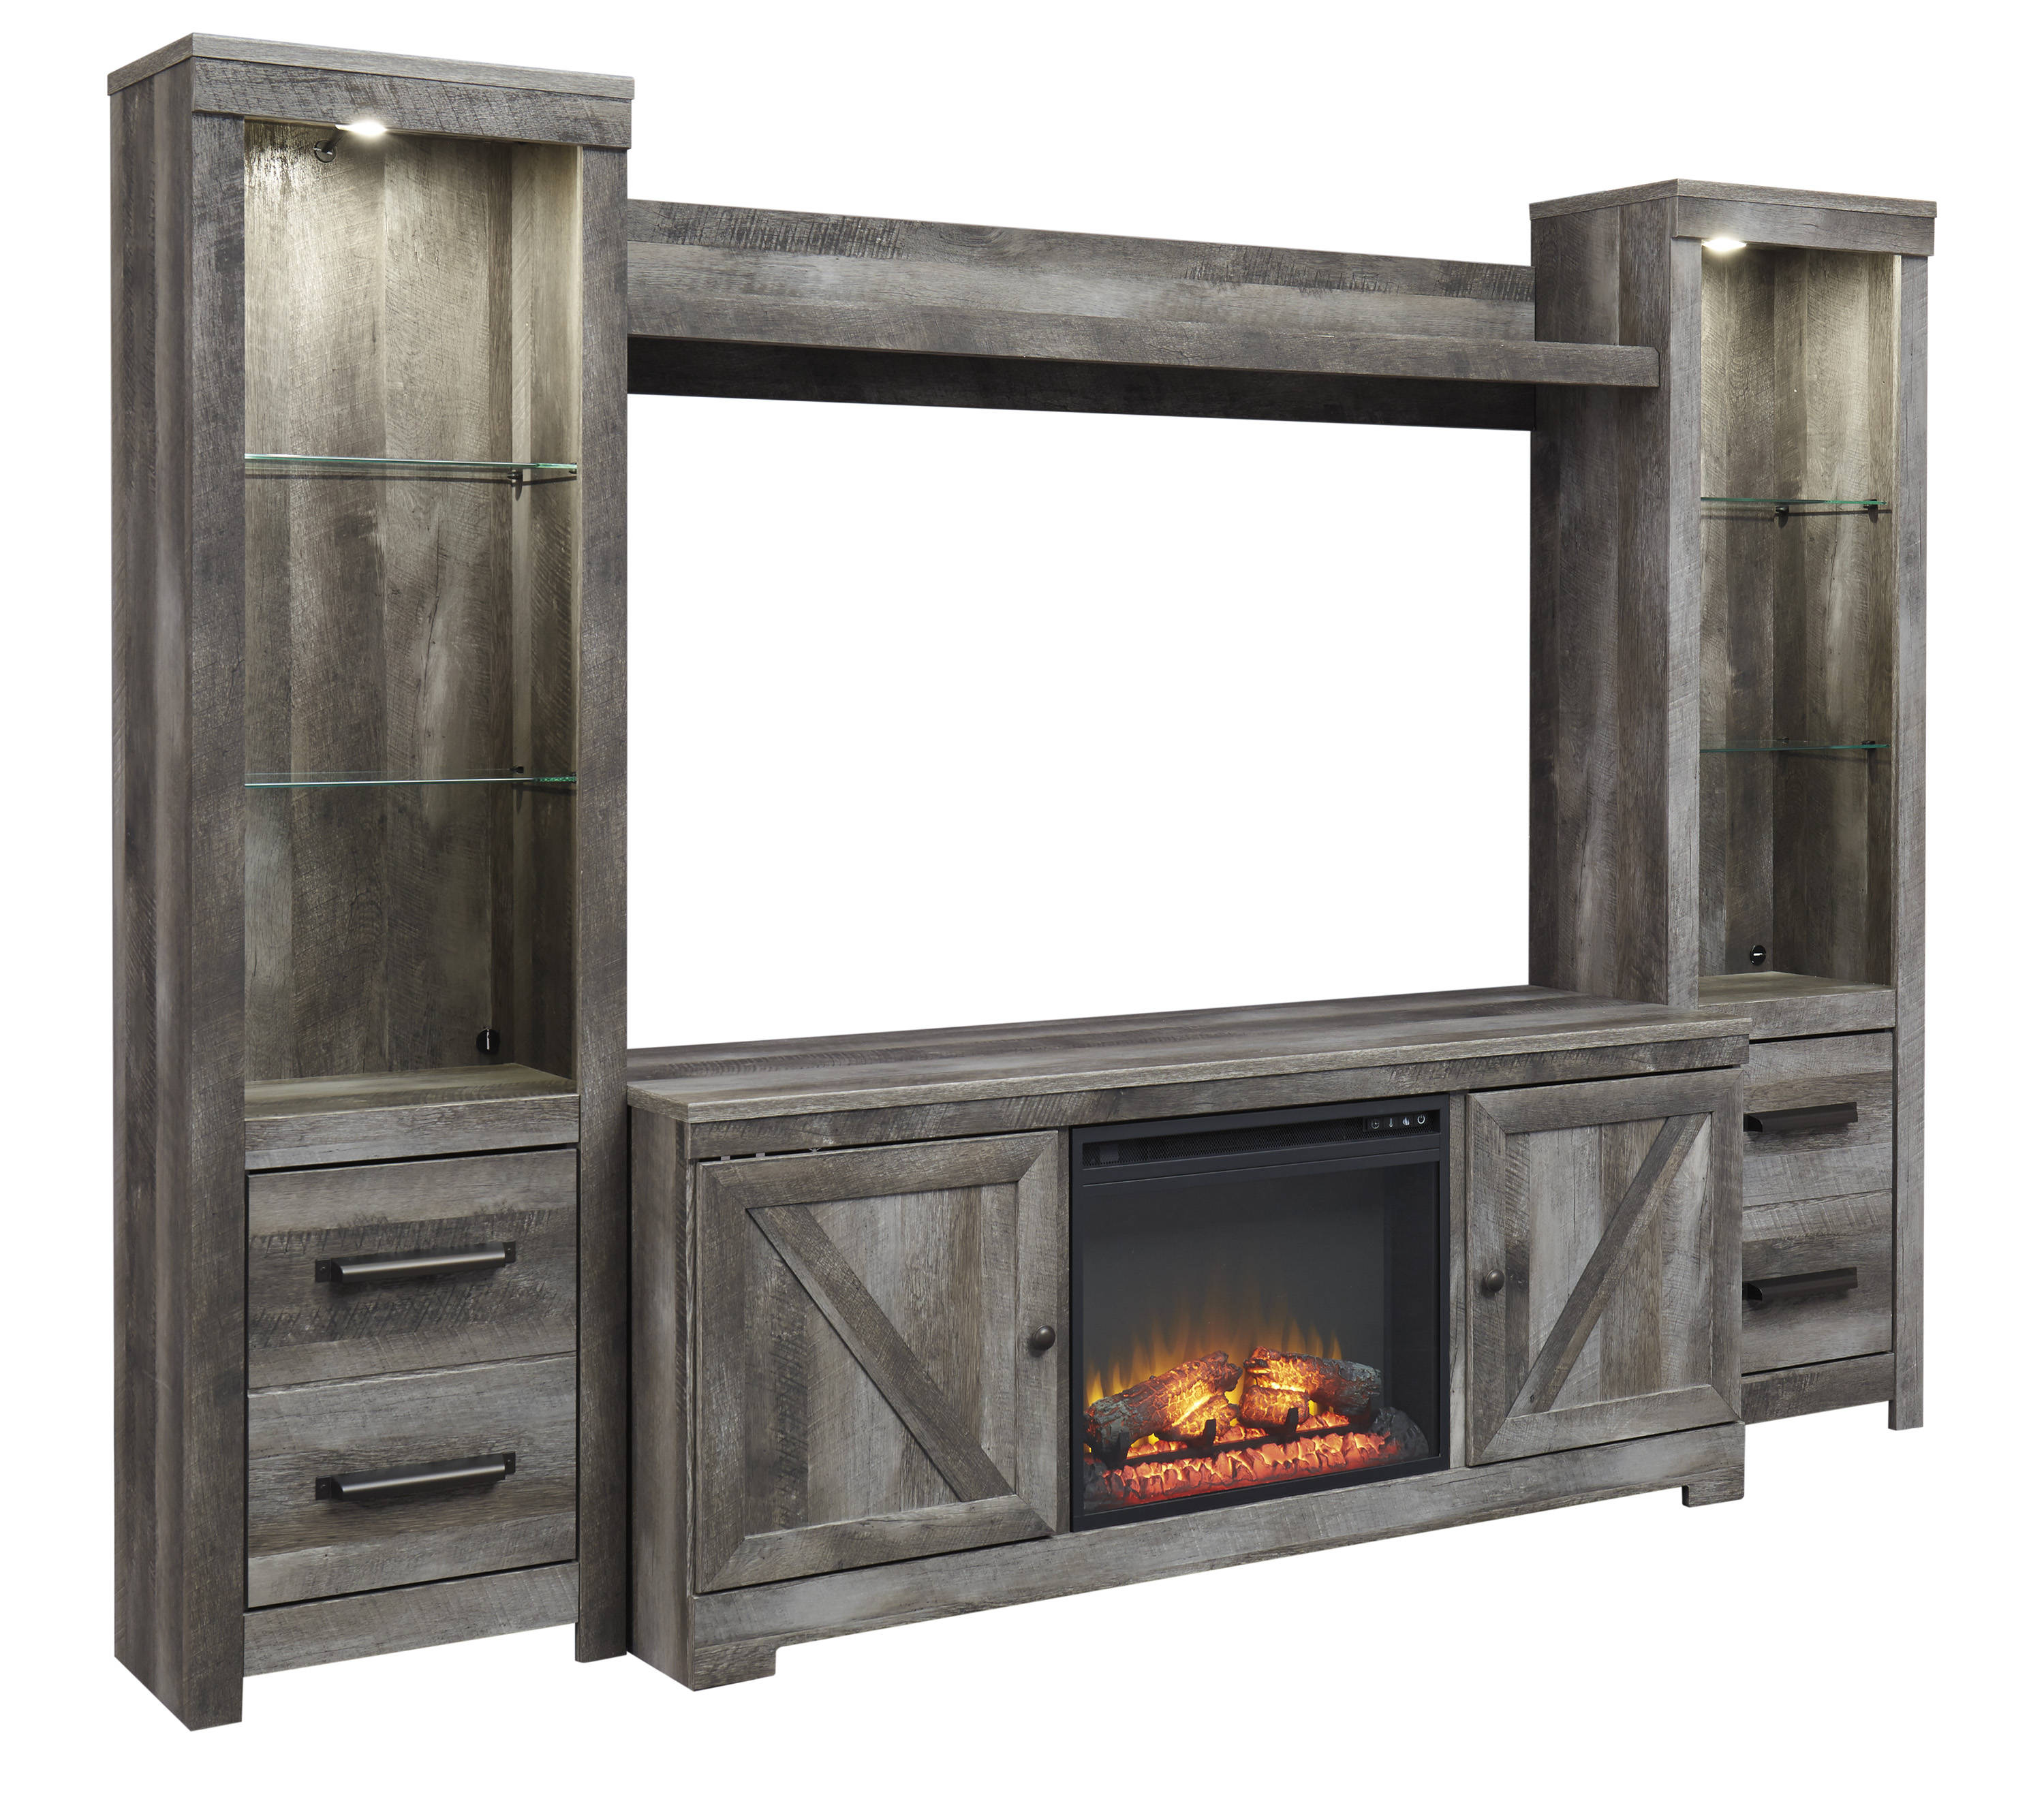 Incredible Ashley Furniture Wynnlow Gray Entertainment Center With Fireplace Insert Home Interior And Landscaping Eliaenasavecom